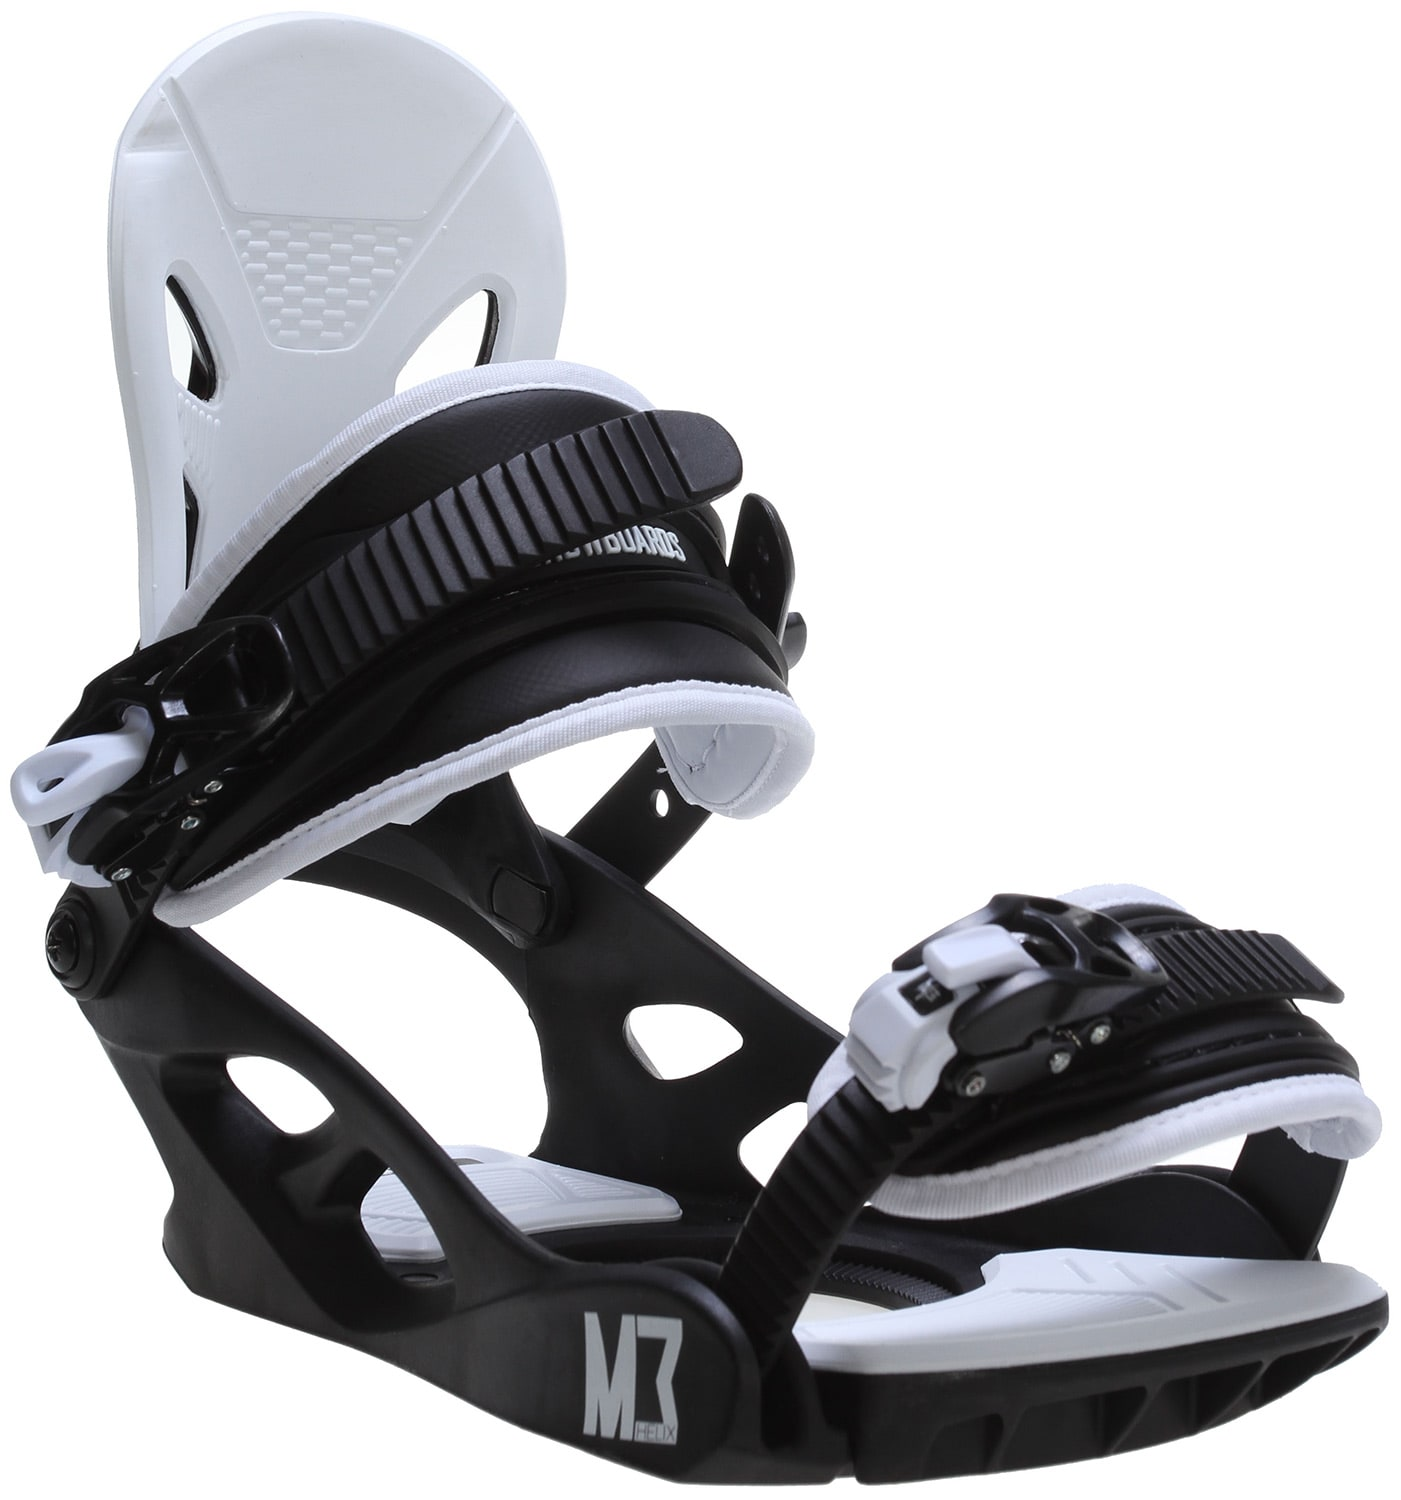 On Sale M3 Helix 3 Snowboard Bindings Up To 50% Off